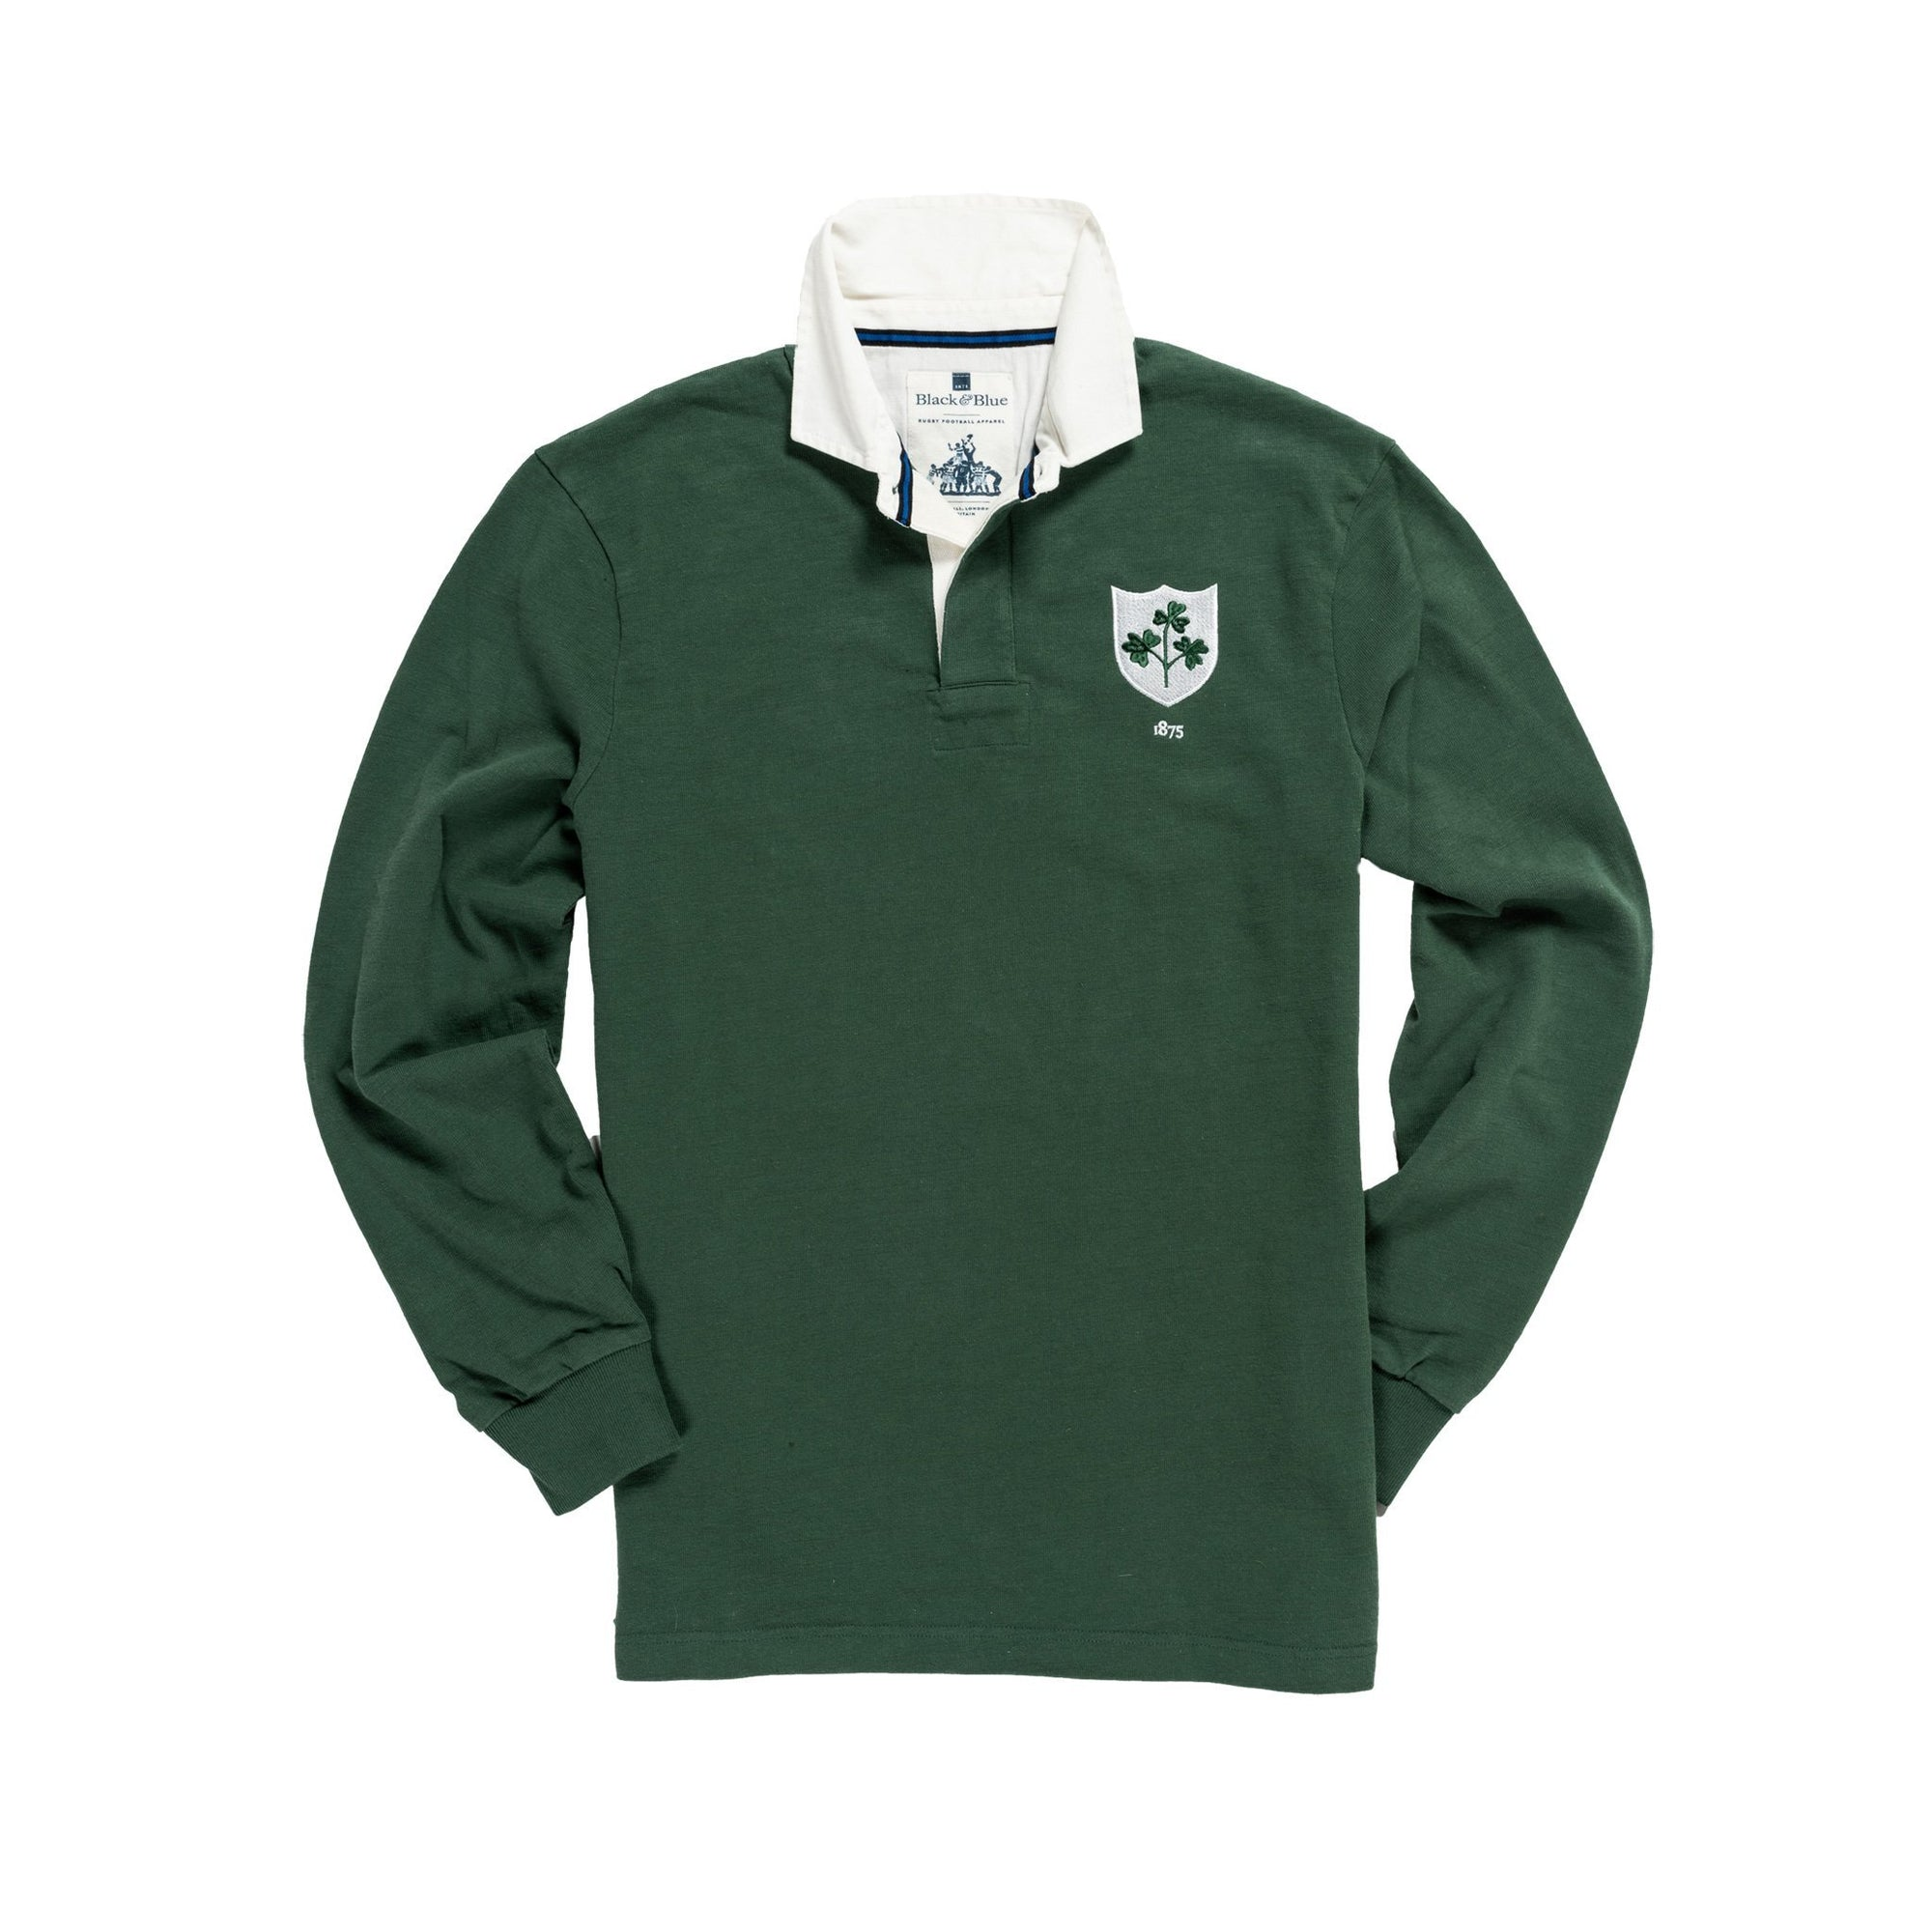 Vintage, Classic Cotton Rugby Shirt | Black & Blue 1871 | Ireland 1875 Rugby Shirt